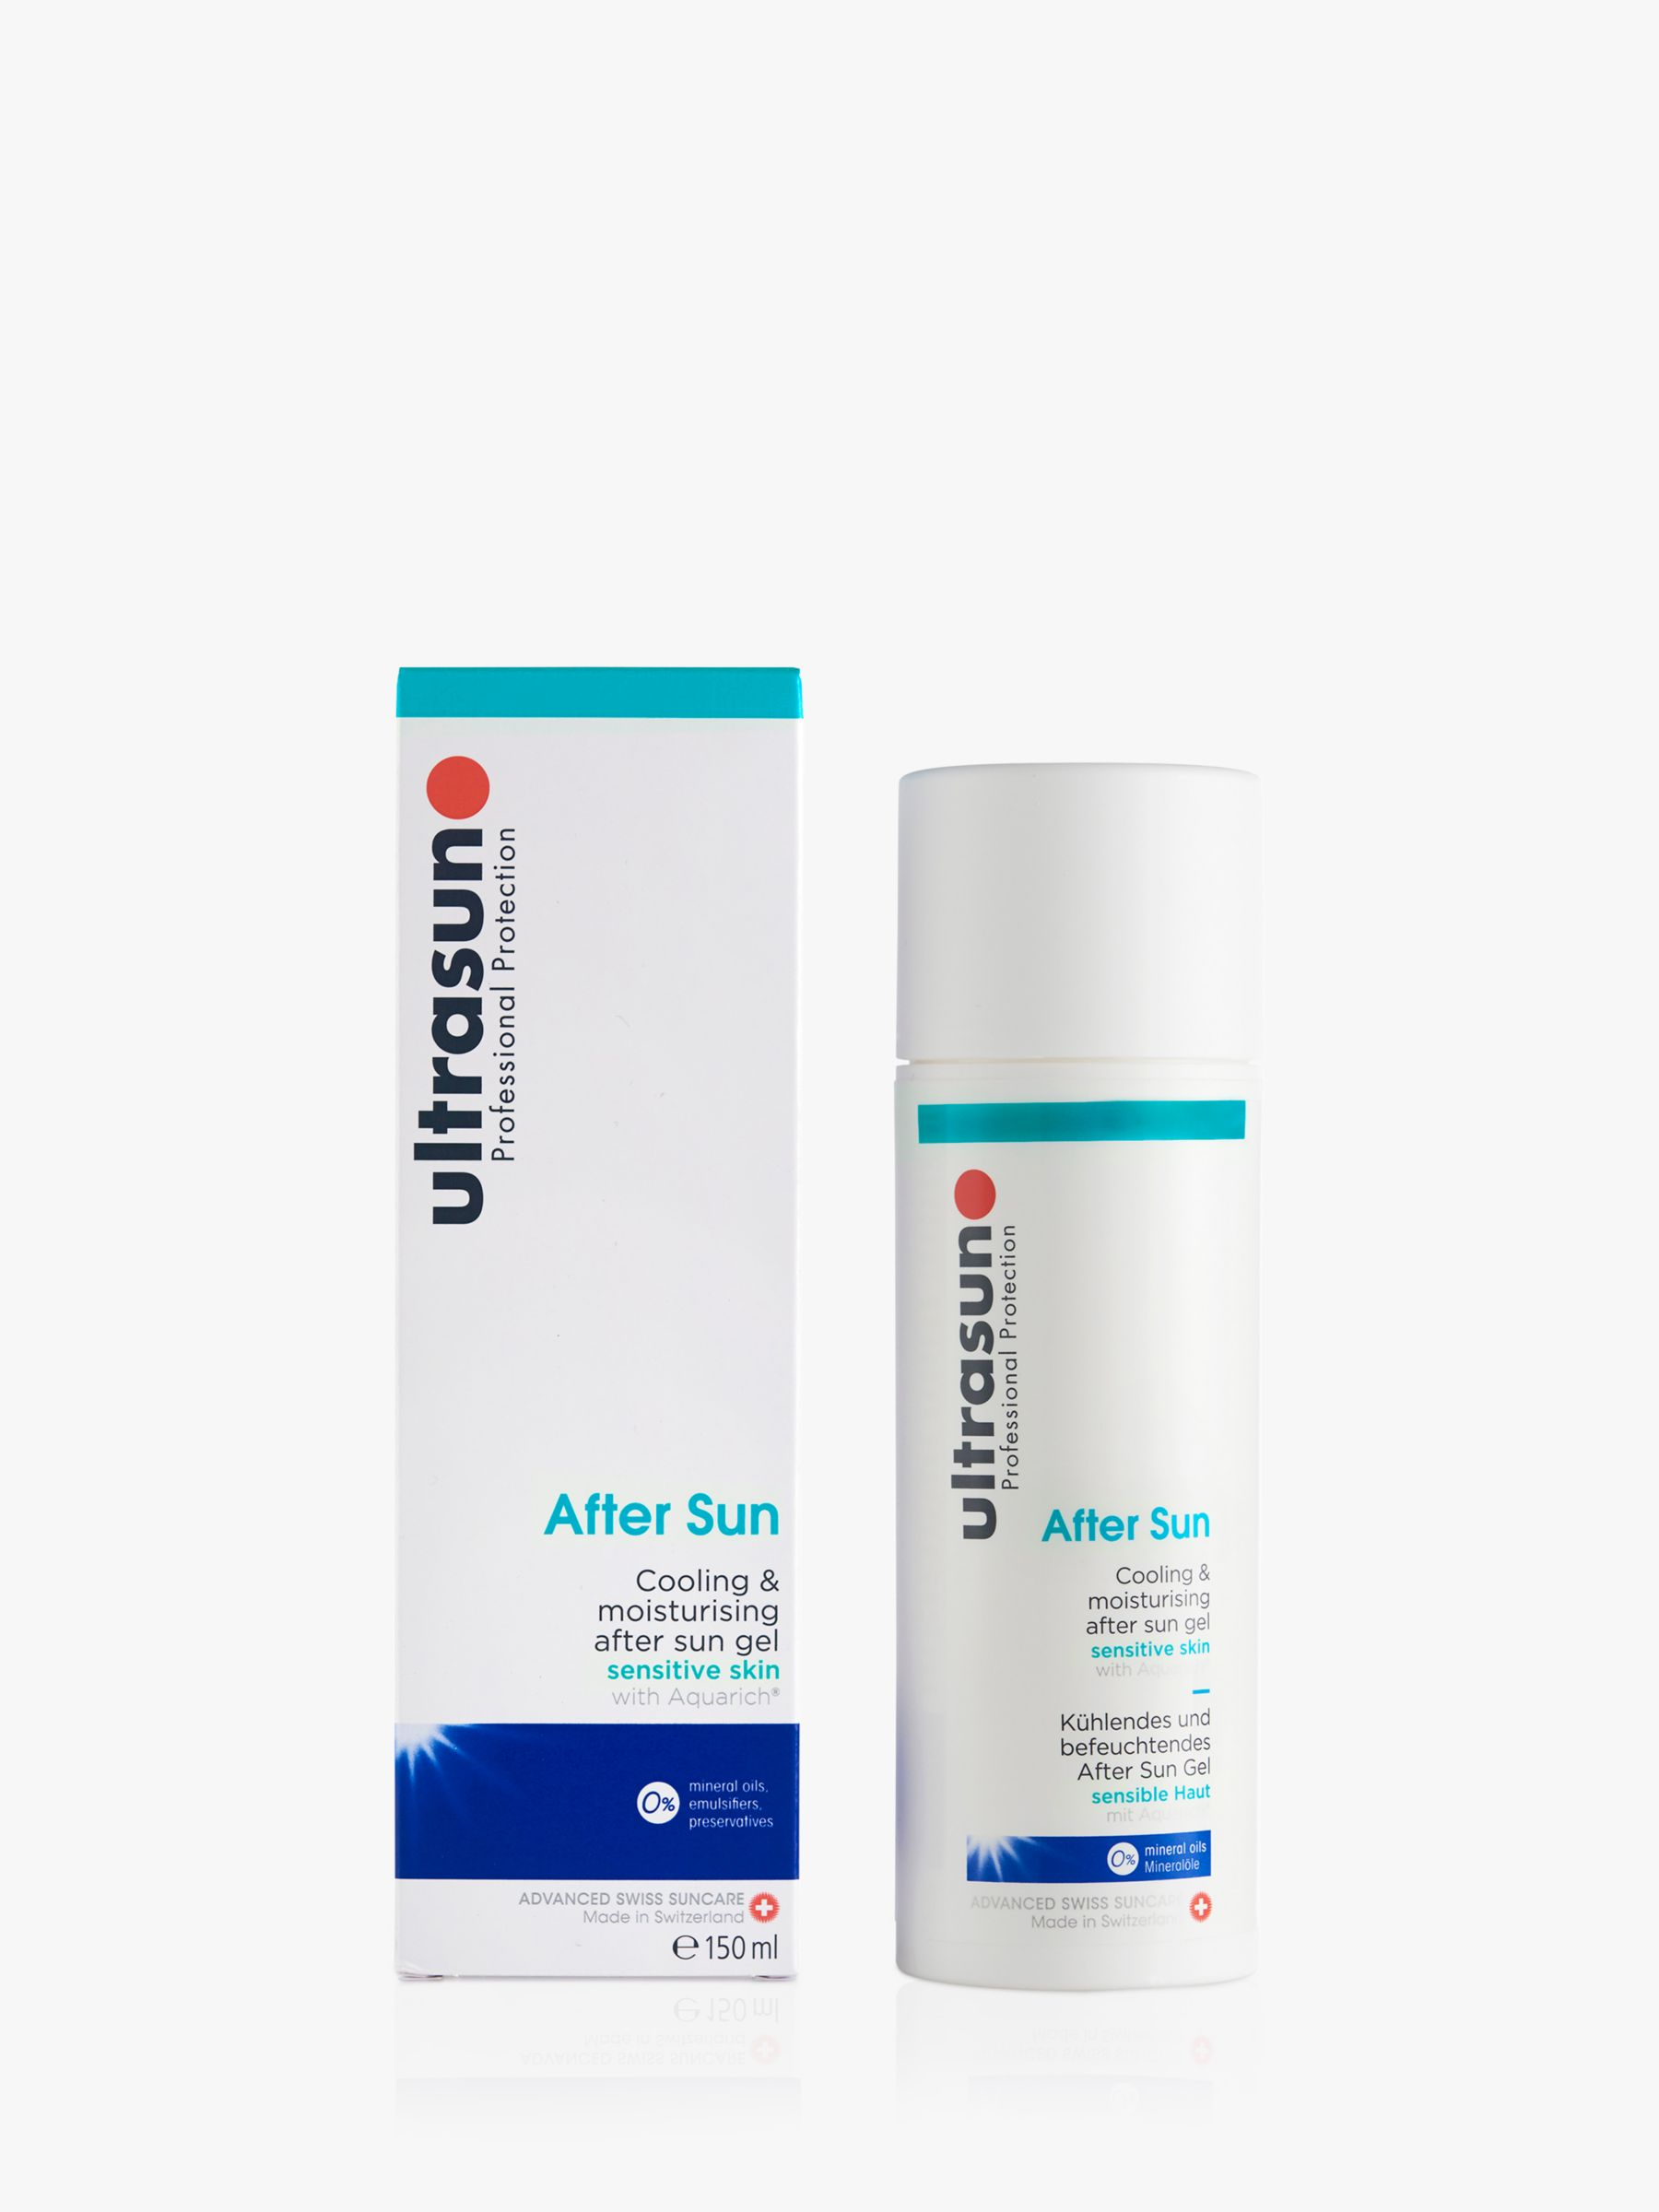 Ultrasun Ultrasun Cooling & Moisturising After Sun Cream, 150ml